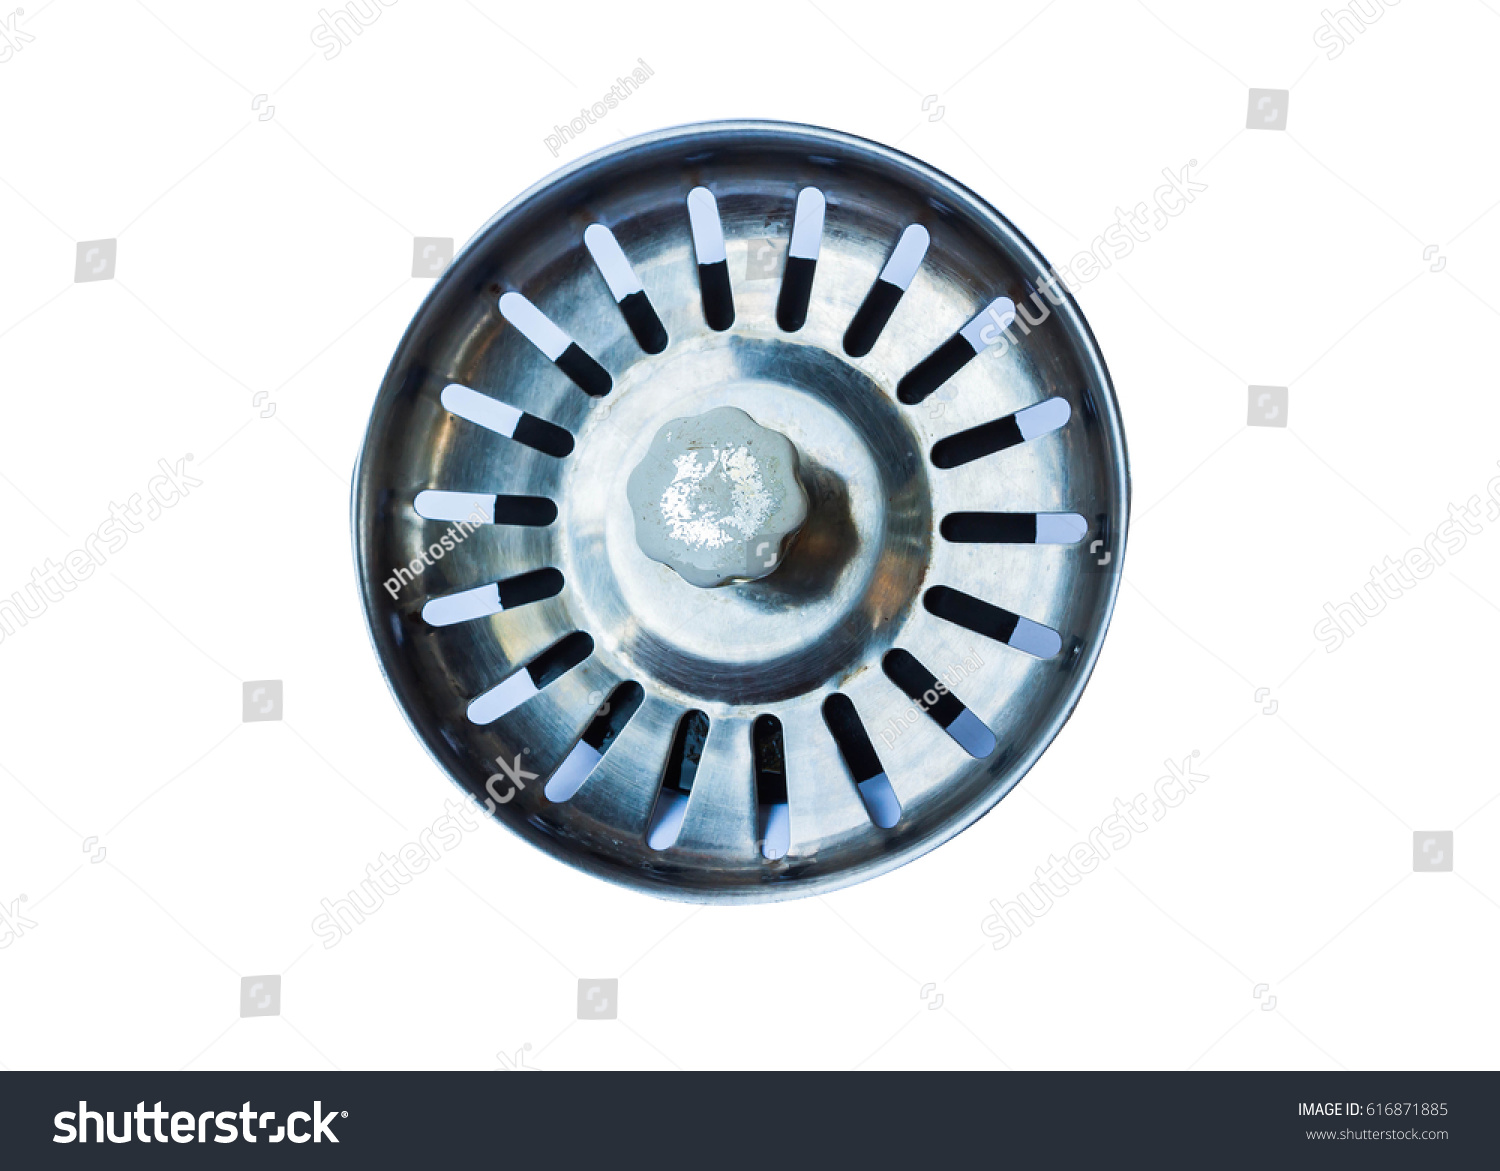 Old Steel Sink Drain Filter Cover Stock Photo 616871885 - Shutterstock